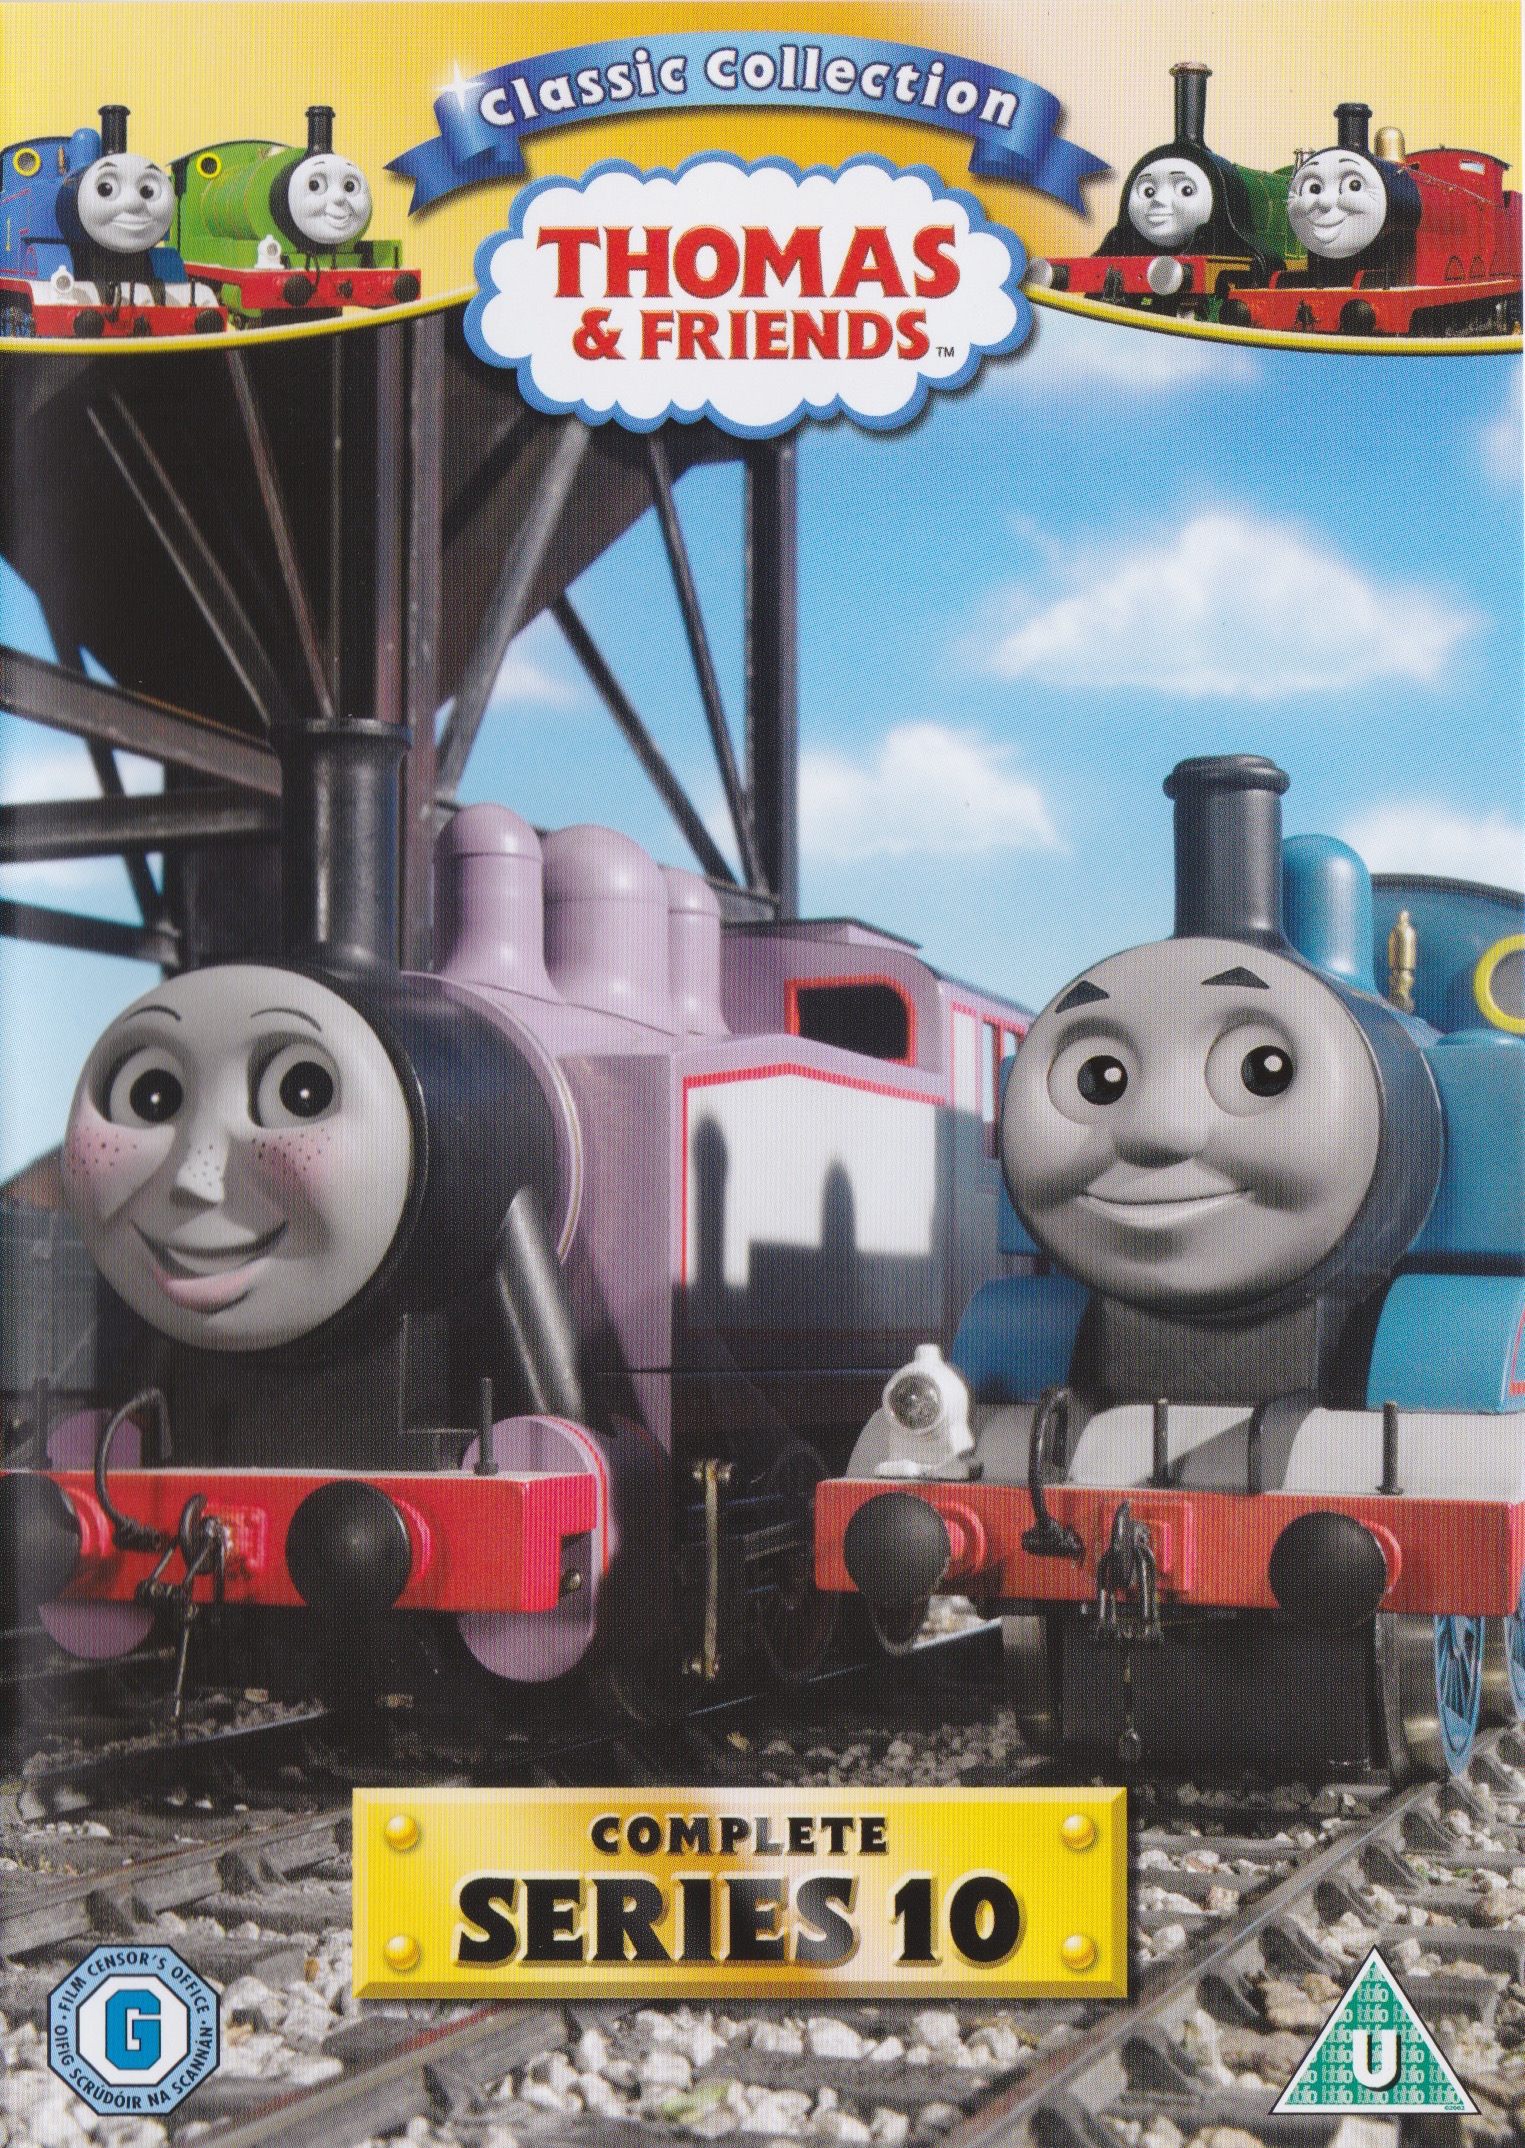 The Complete Series 10 Thomas the Tank Engine Wikia